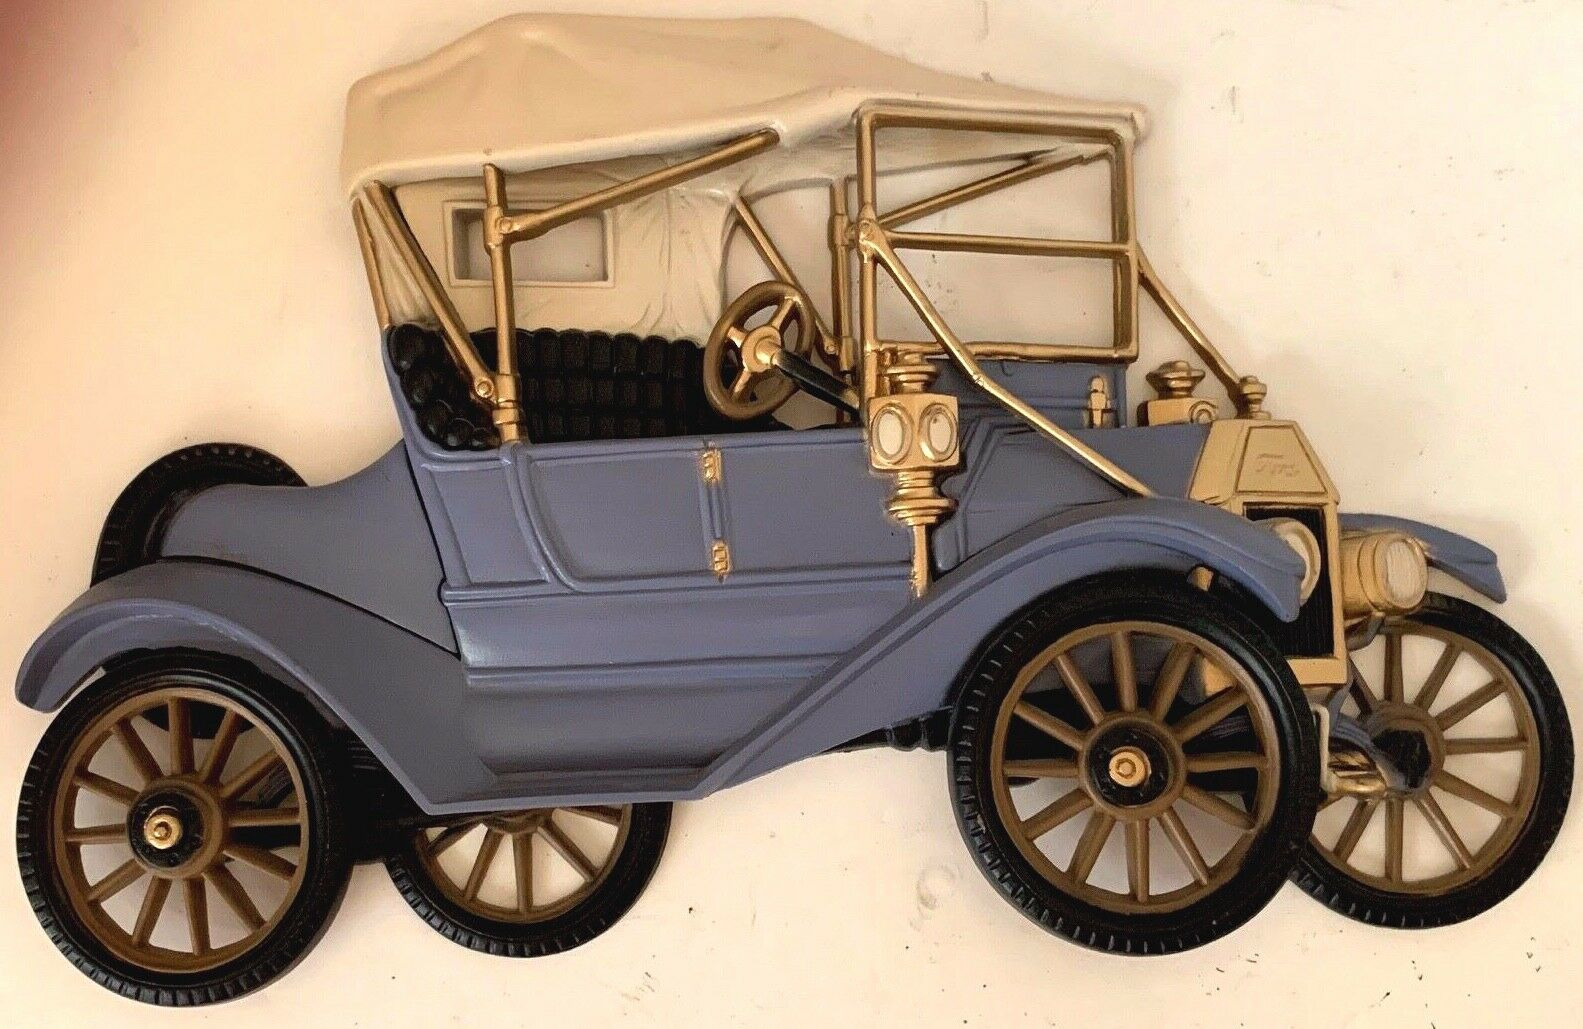 Ford Model T Blue / Cream / Gold Wall Art Burwood Home Products 1977 MCM #2028-1 - $14.85